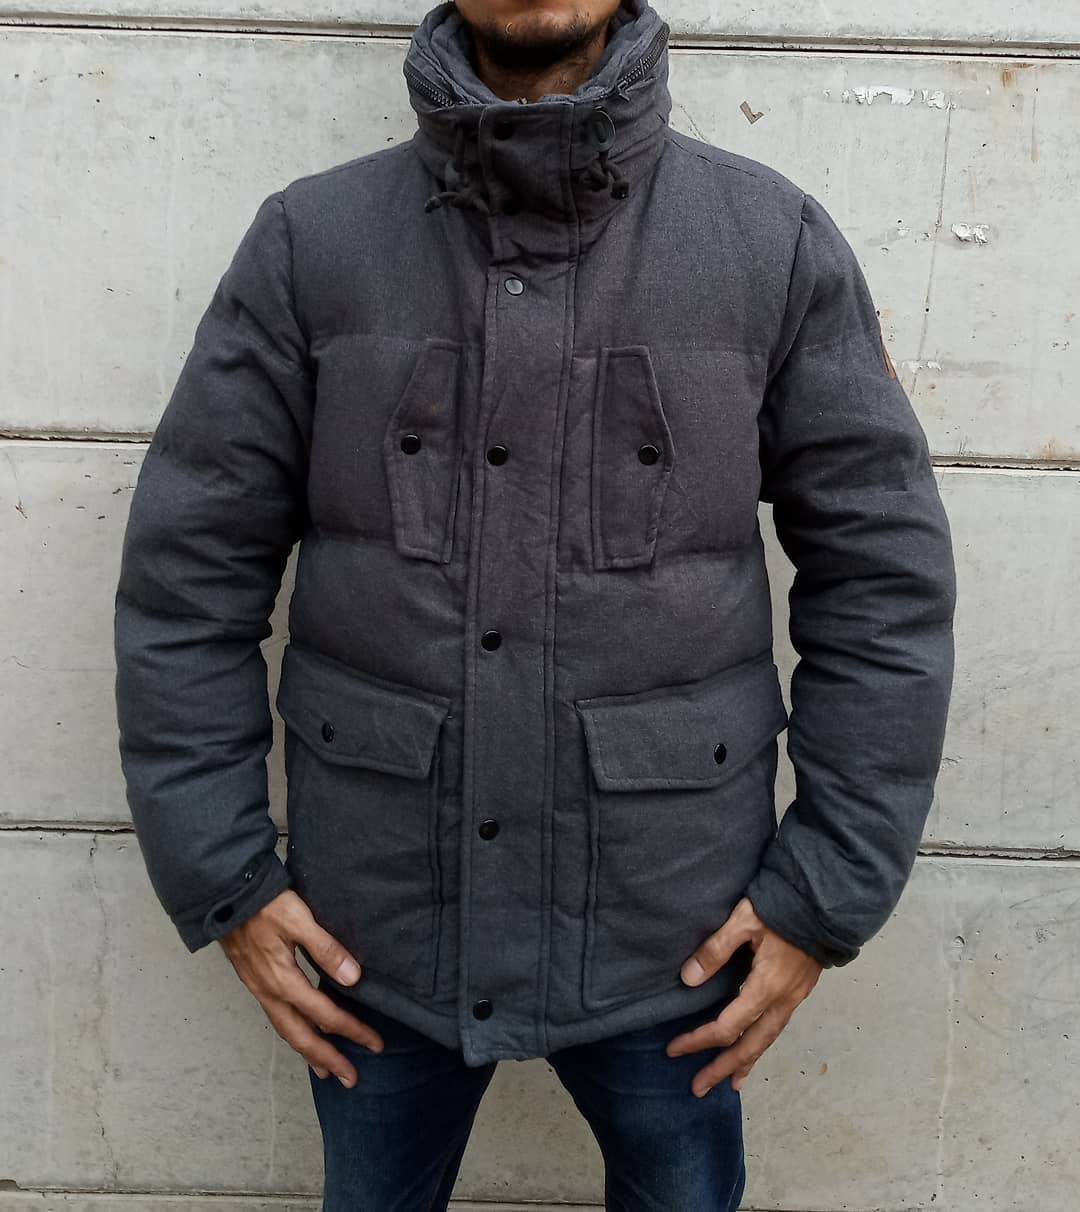 Mens Jackets 2020: Trends and Tendencies of Mens Fashion Jackets (35 Photo+ Video)